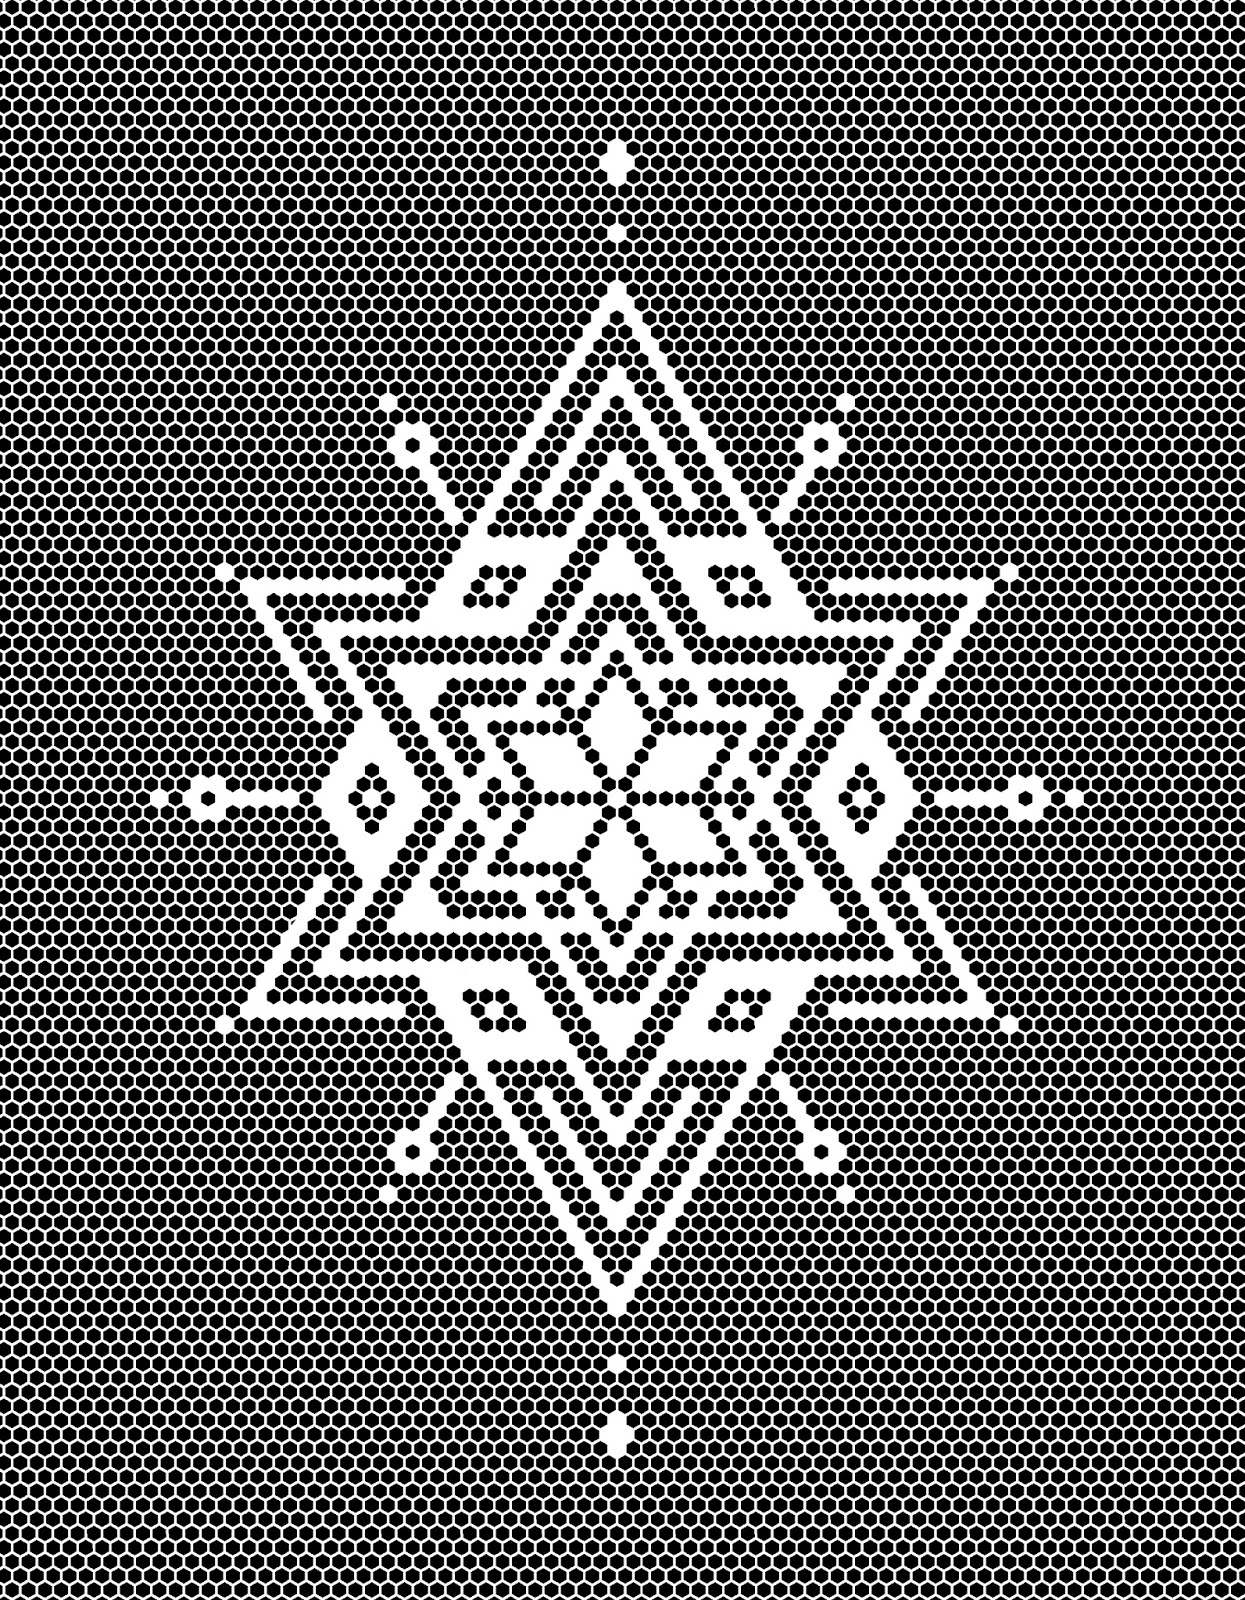 Hexagon Tile Star Pattern